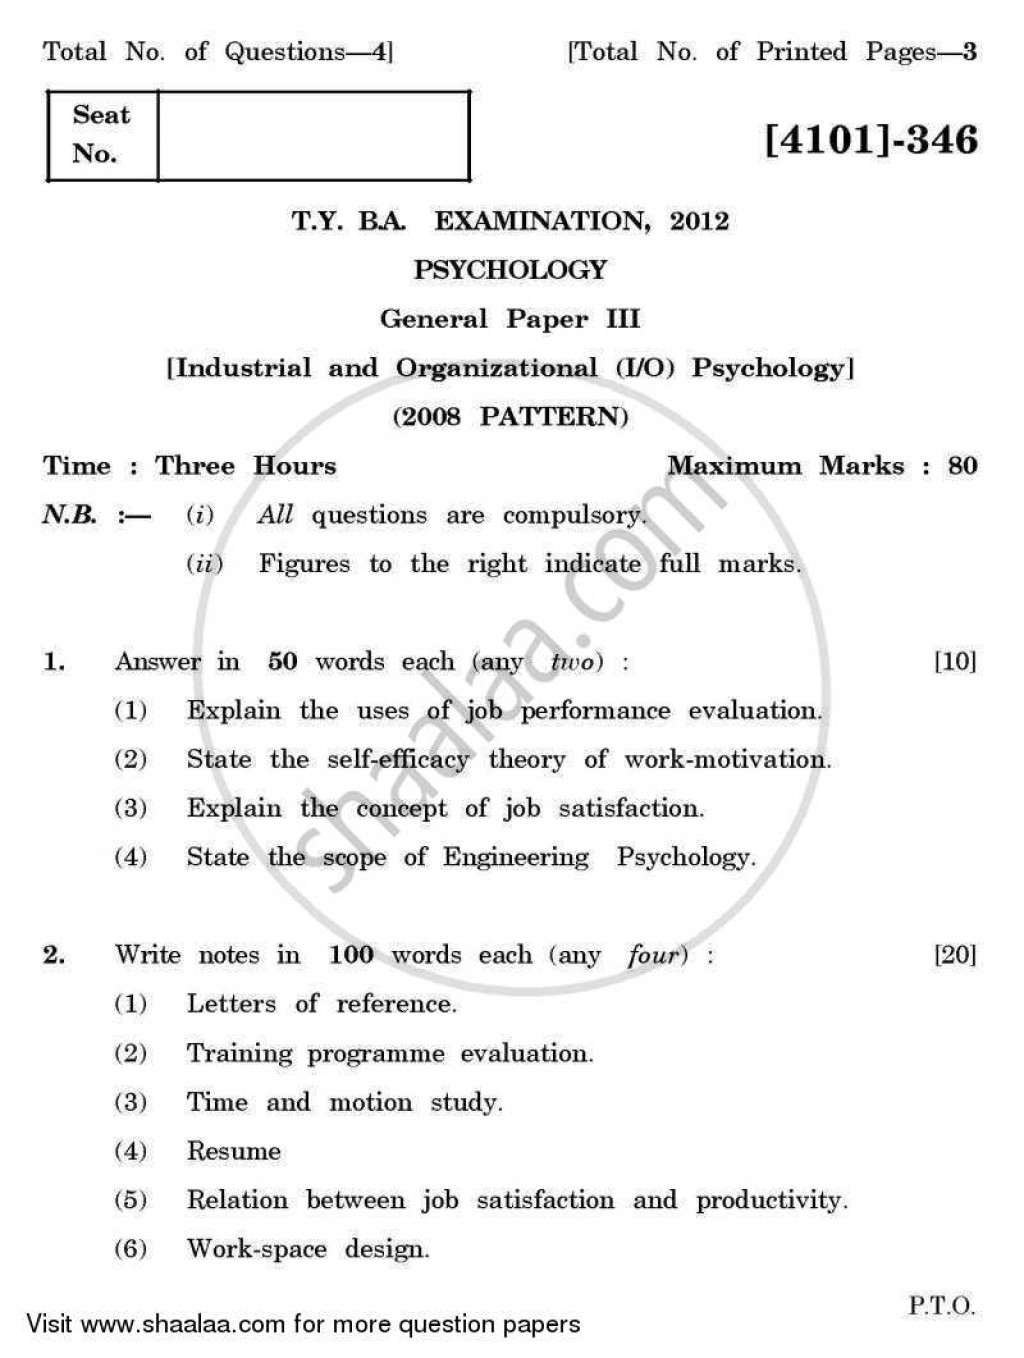 018 Research Paper University Of Pune Bachelor Psychology General Industrial Organizational Tyba 3rd Year 2011 2423148fb186f44d8a12cf9feb41c8ae0 Papers Unforgettable On Free Forensic Topics Criminal Large